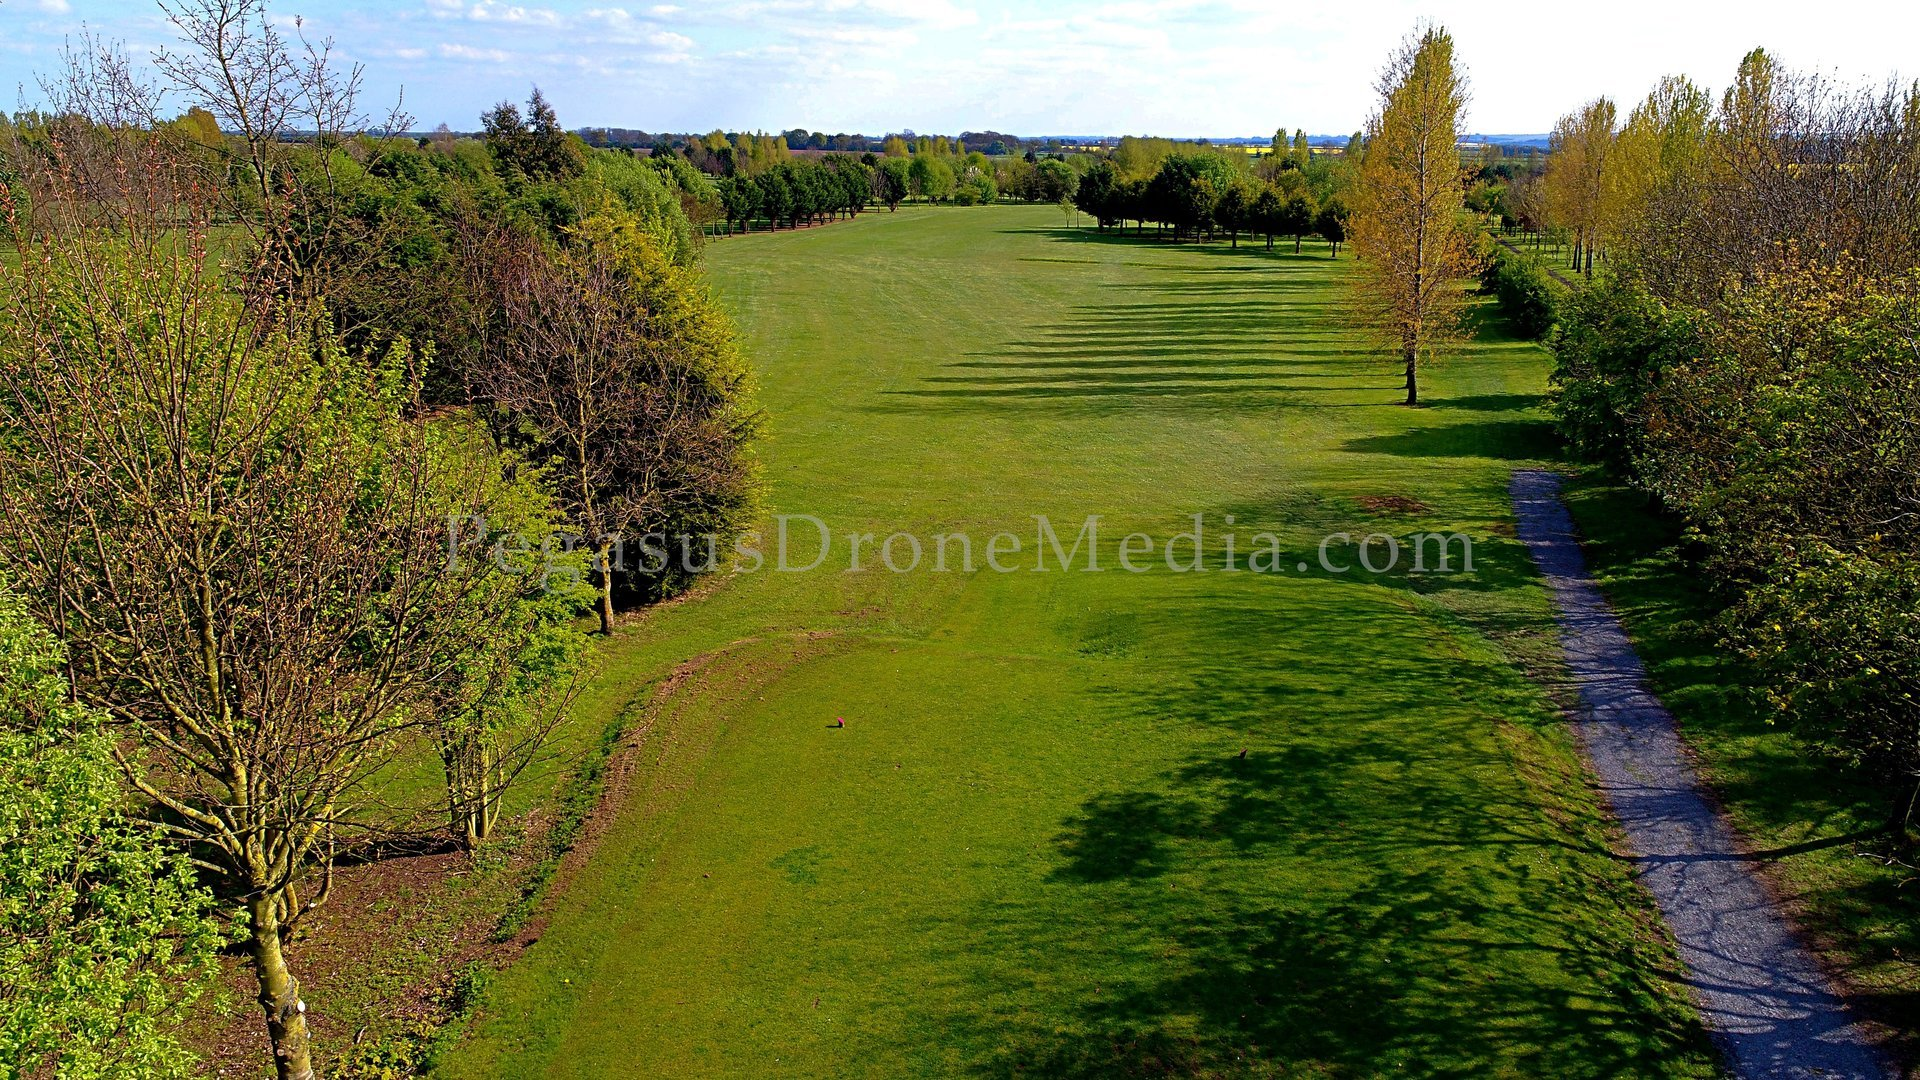 Golf fairway photographed from the air by drone SUA